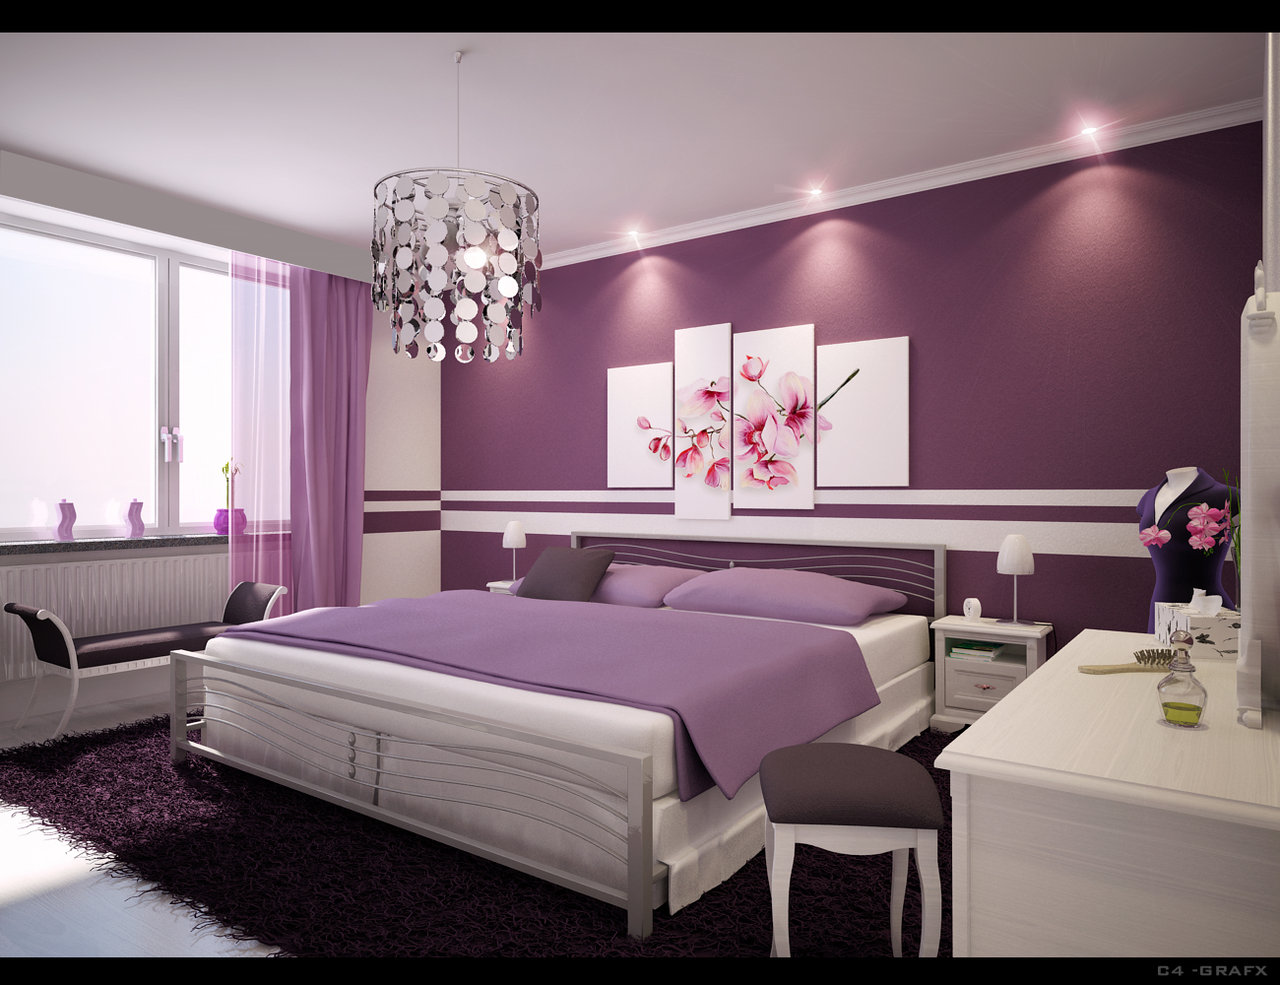 Top Adult Bedroom Design Ideas 1280 x 985 · 201 kB · jpeg